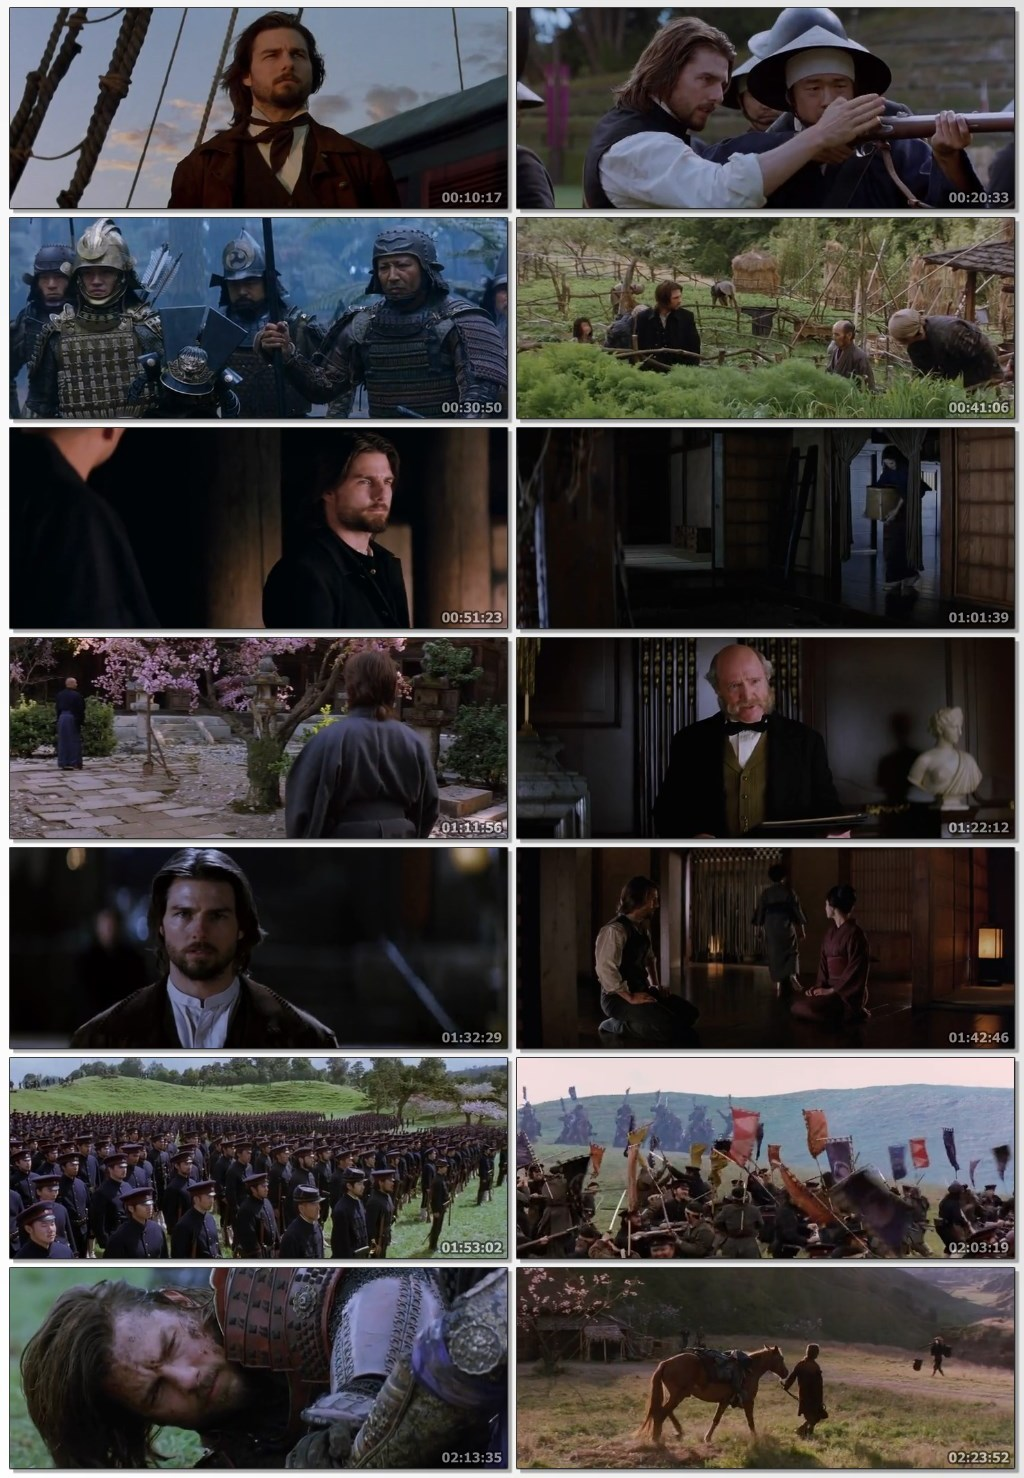 the last samurai movie download 720p, the last samurai movie download 480p, the last samurai movie download 300mb, the last samurai movie download in hindi